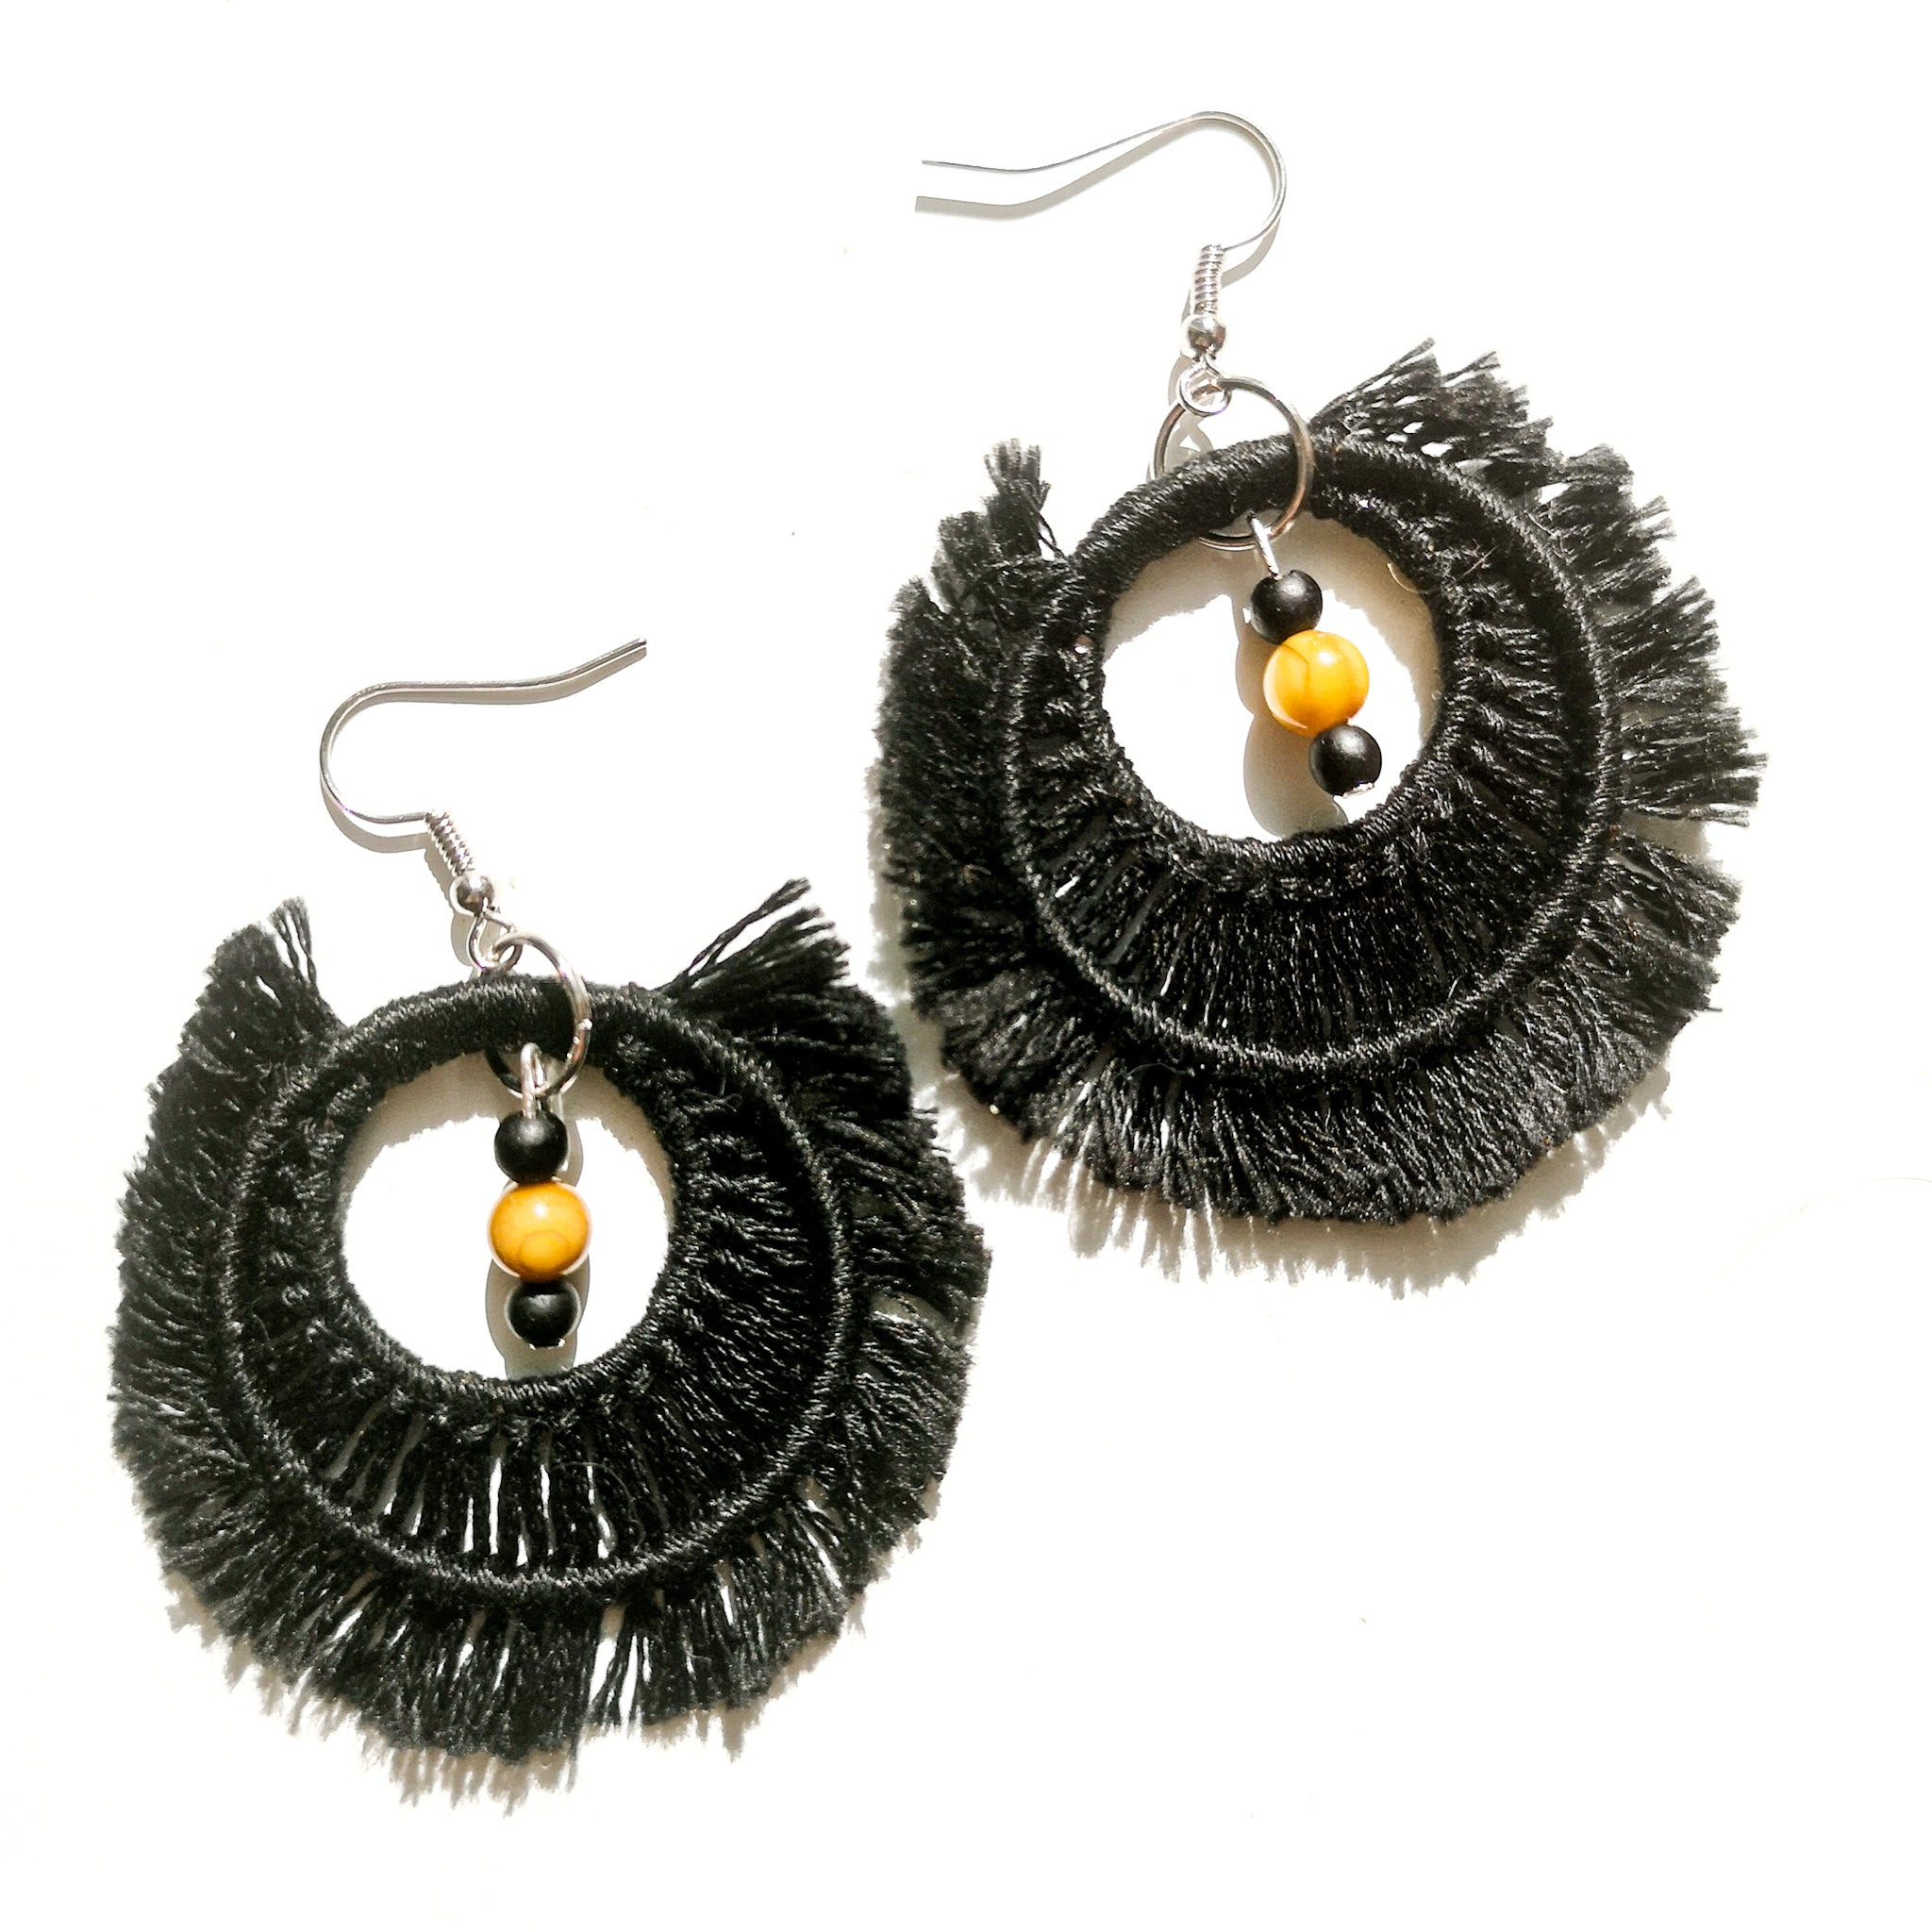 Black Macrame Hoop Earrings w/beads